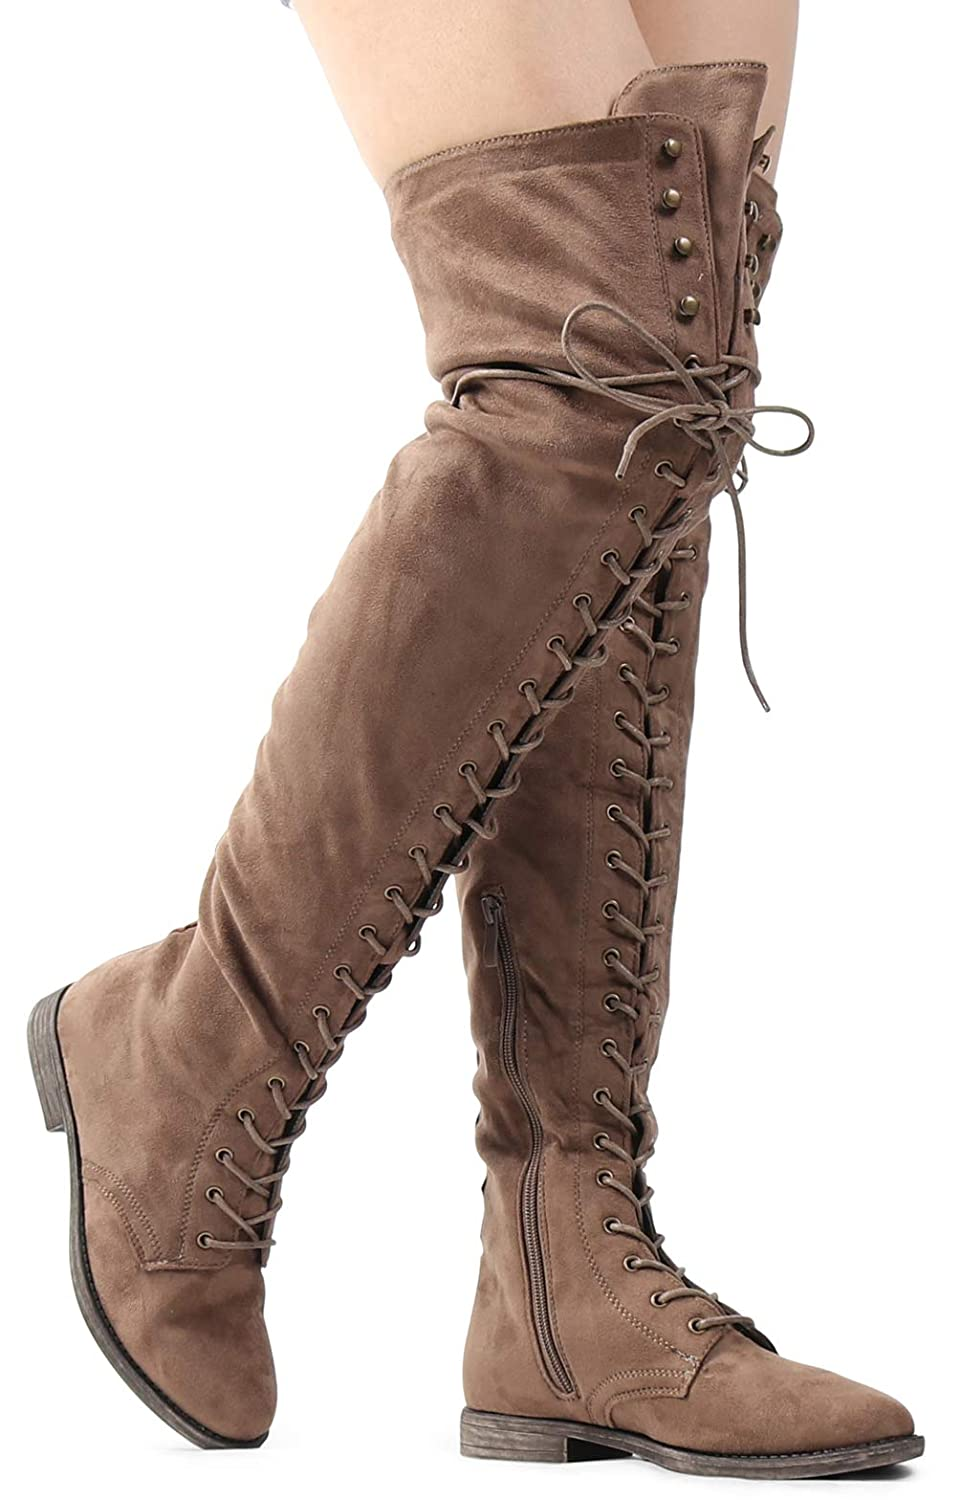 b189573043b Amazon.com  Women s Over The Knee Low Heel Kate Lace Up Tall Boots  Shoes